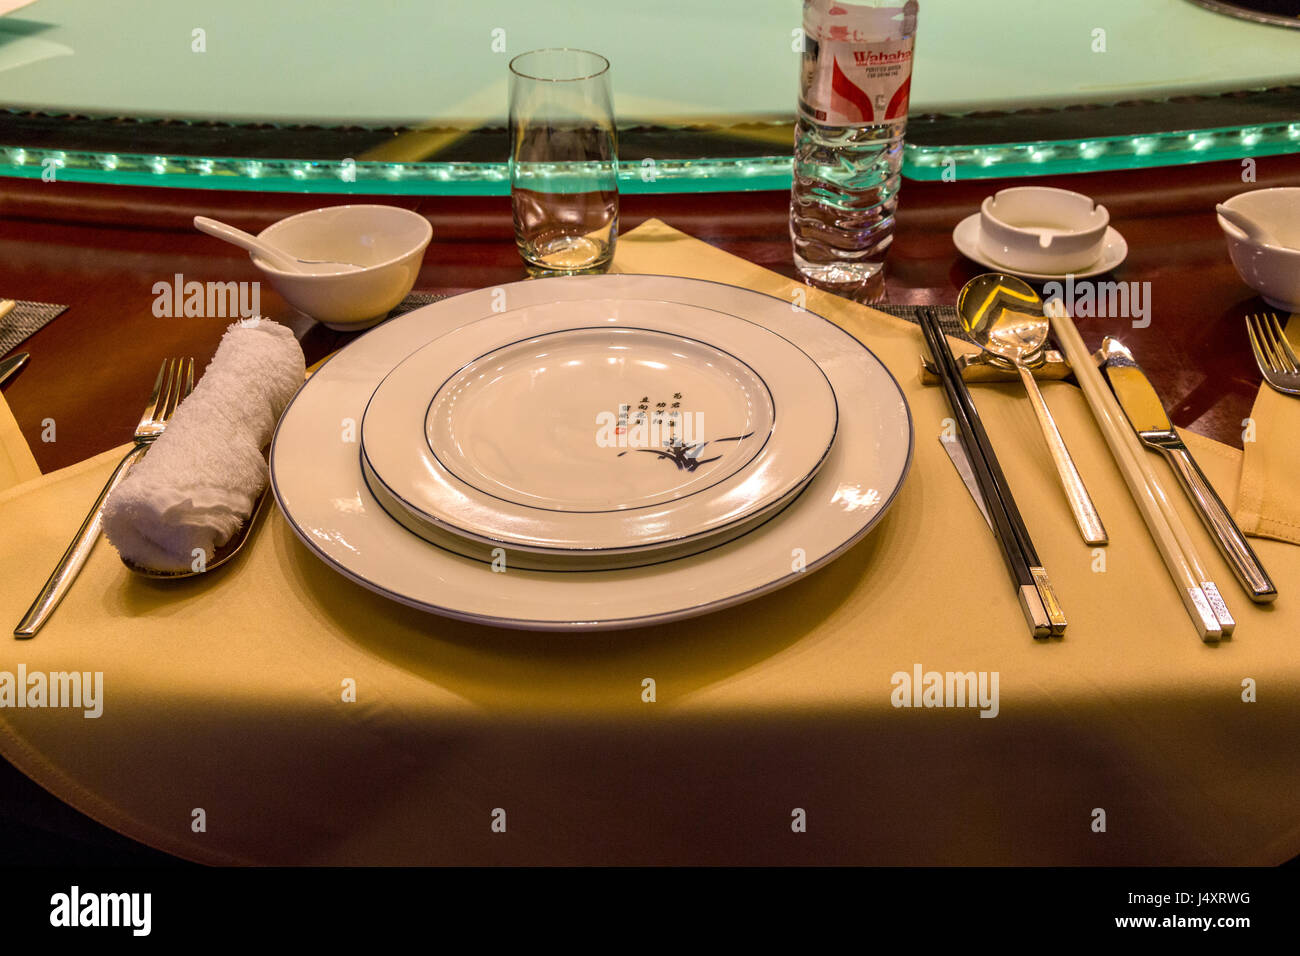 China. Chinese Table Place Setting with Chopsticks. Lazy Susan (Rotating Serving Table) in background & China. Chinese Table Place Setting with Chopsticks. Lazy Susan Stock ...